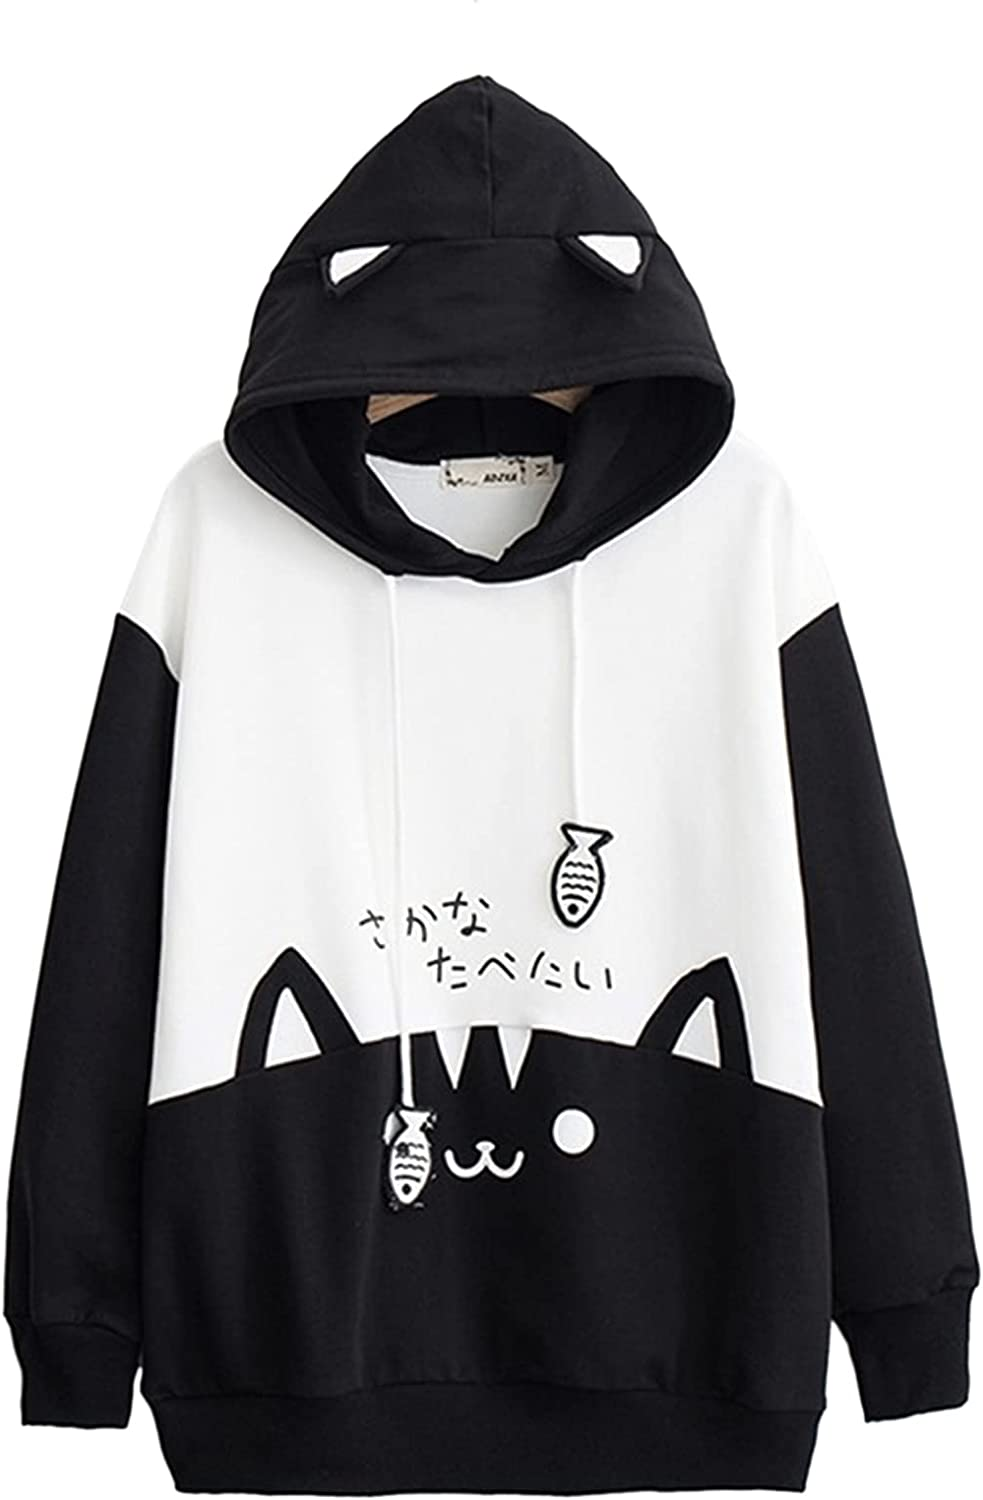 Women Casual Long Sleeve Loose Sweatshirt Fashion Letter Print Hoodies Pullover with Pocket